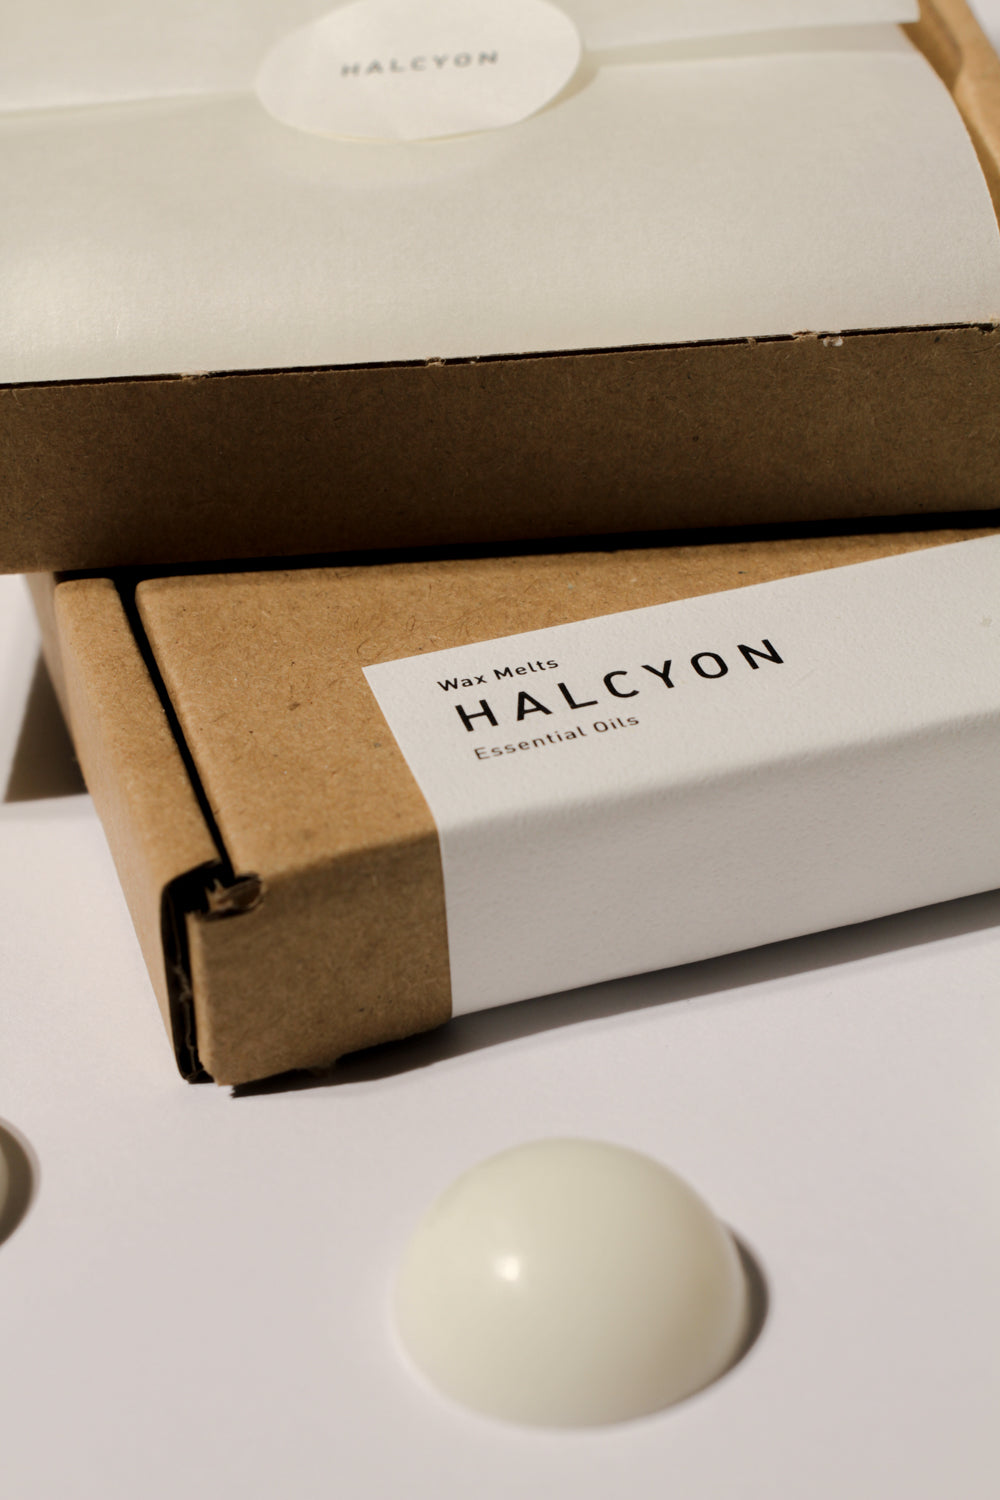 Essential Oil wax melts - Halcyon wax melts in kraft eco packaging